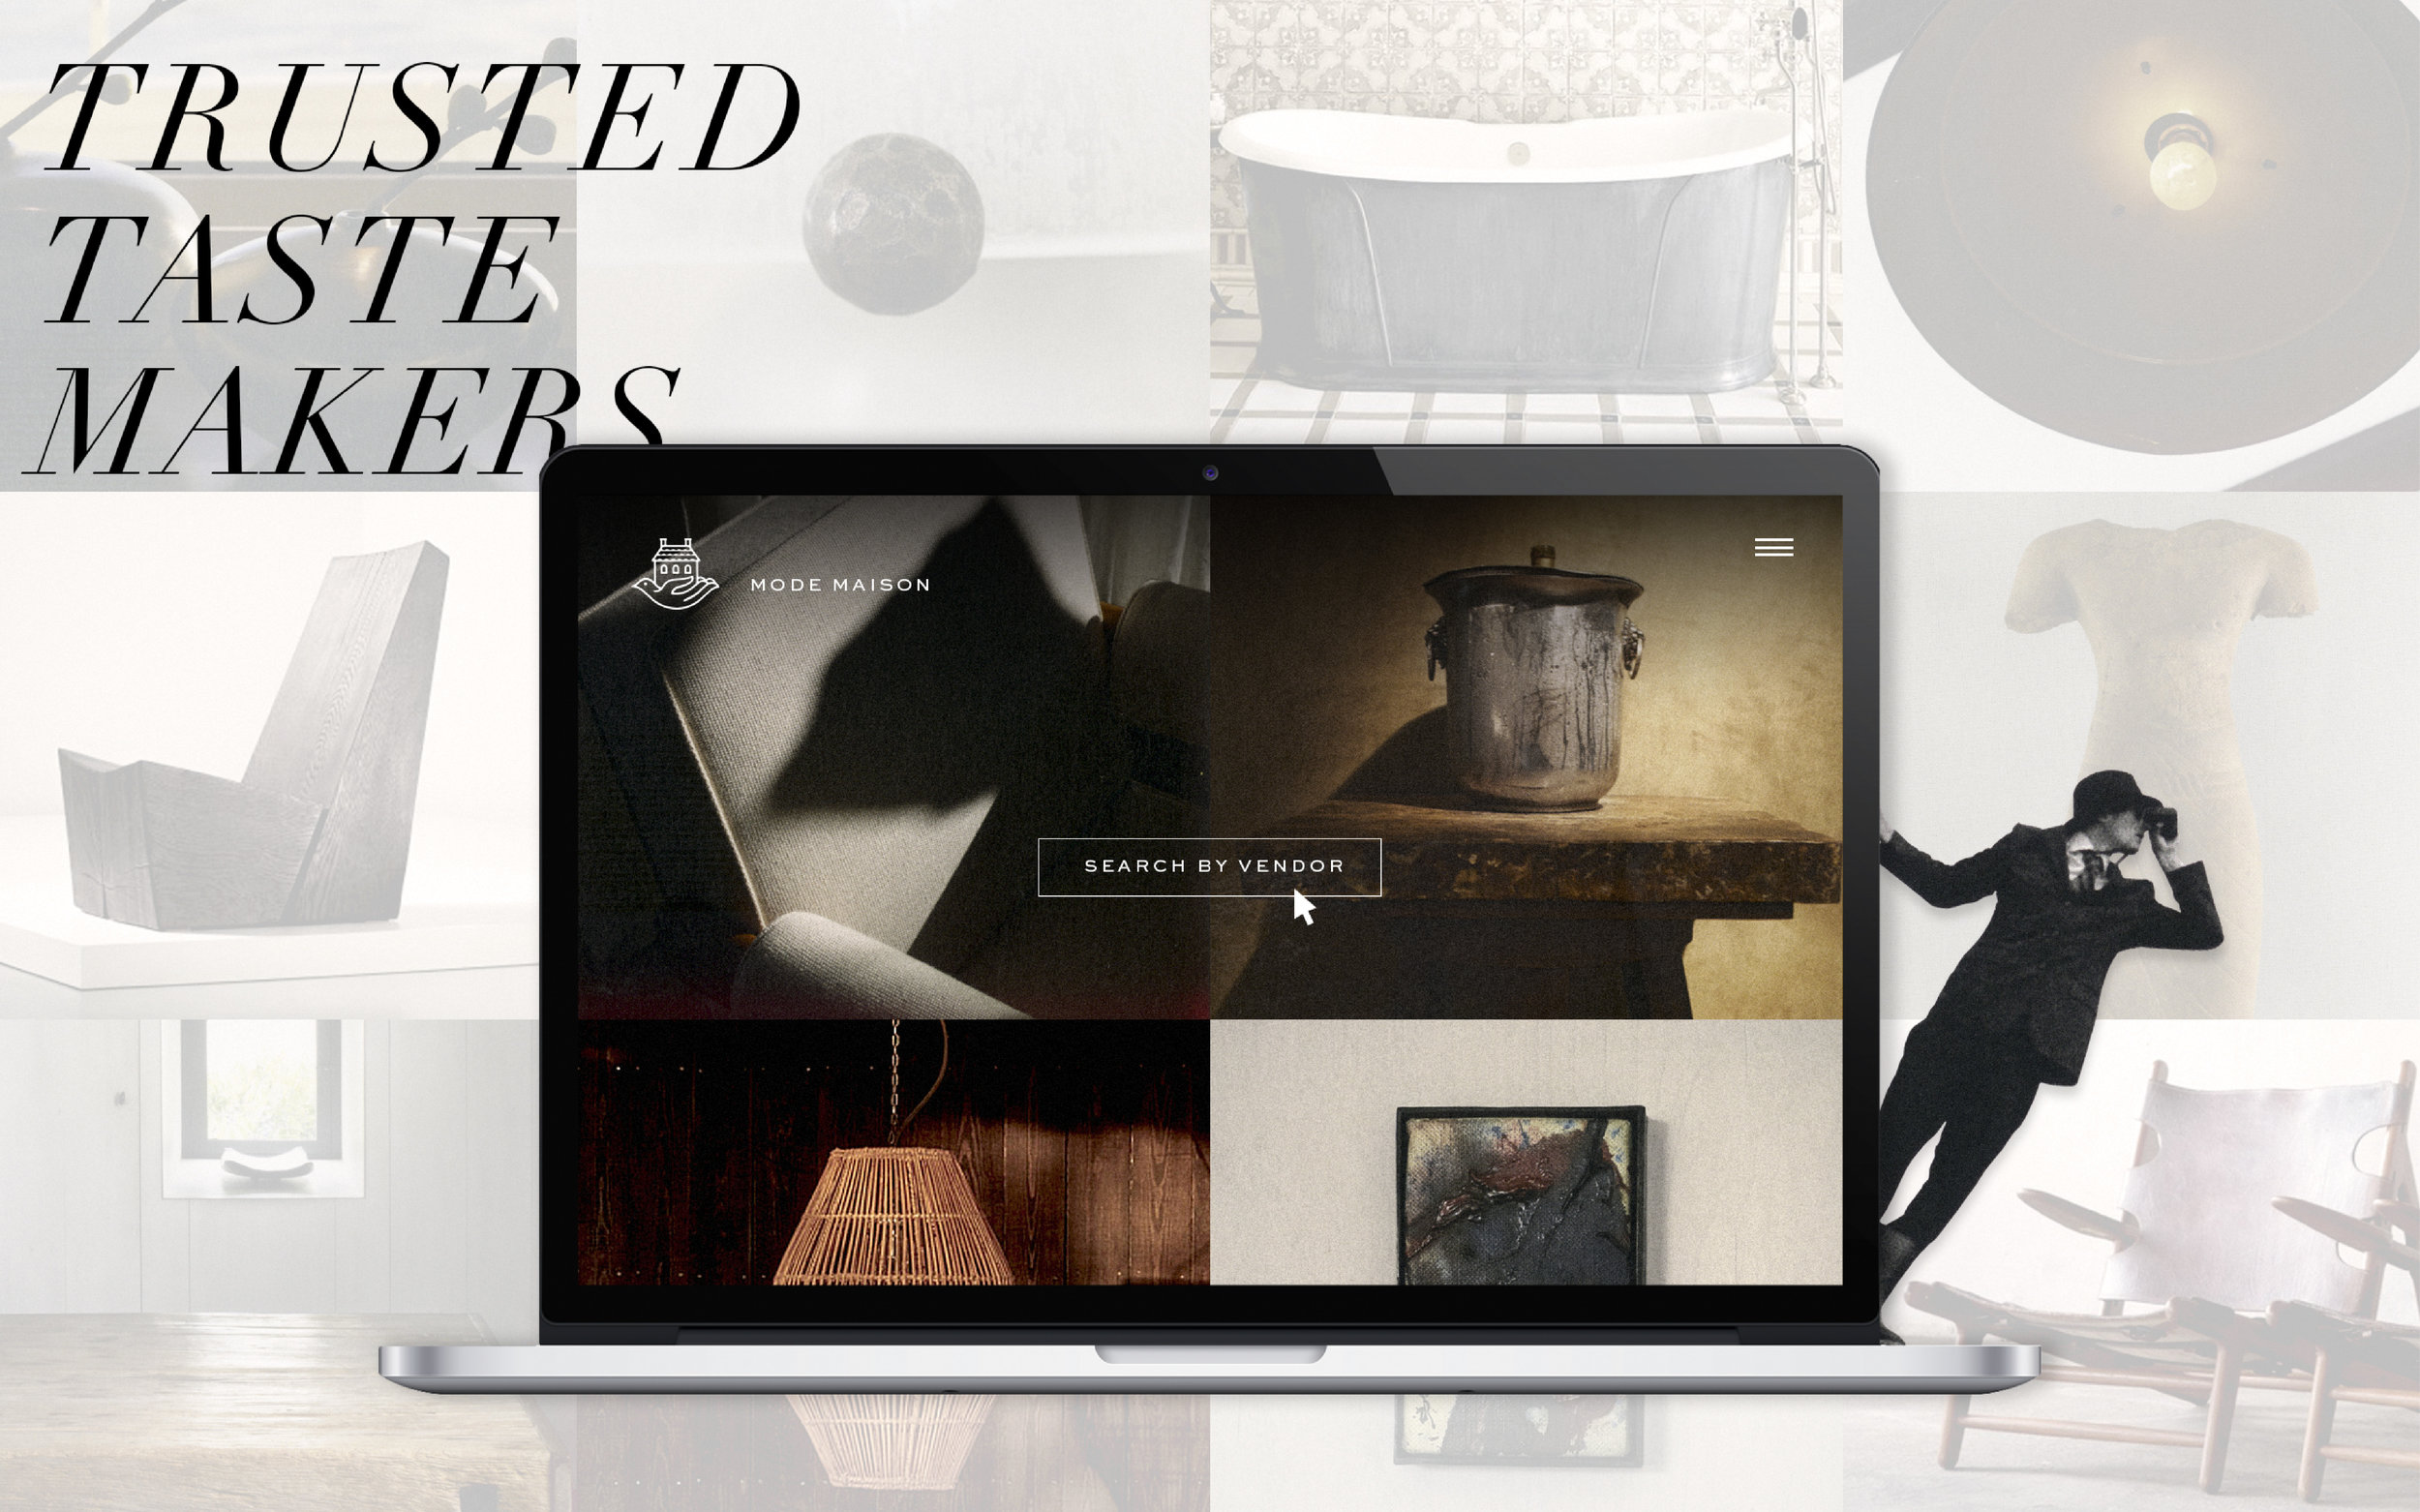 Opening up a whole new world of design online